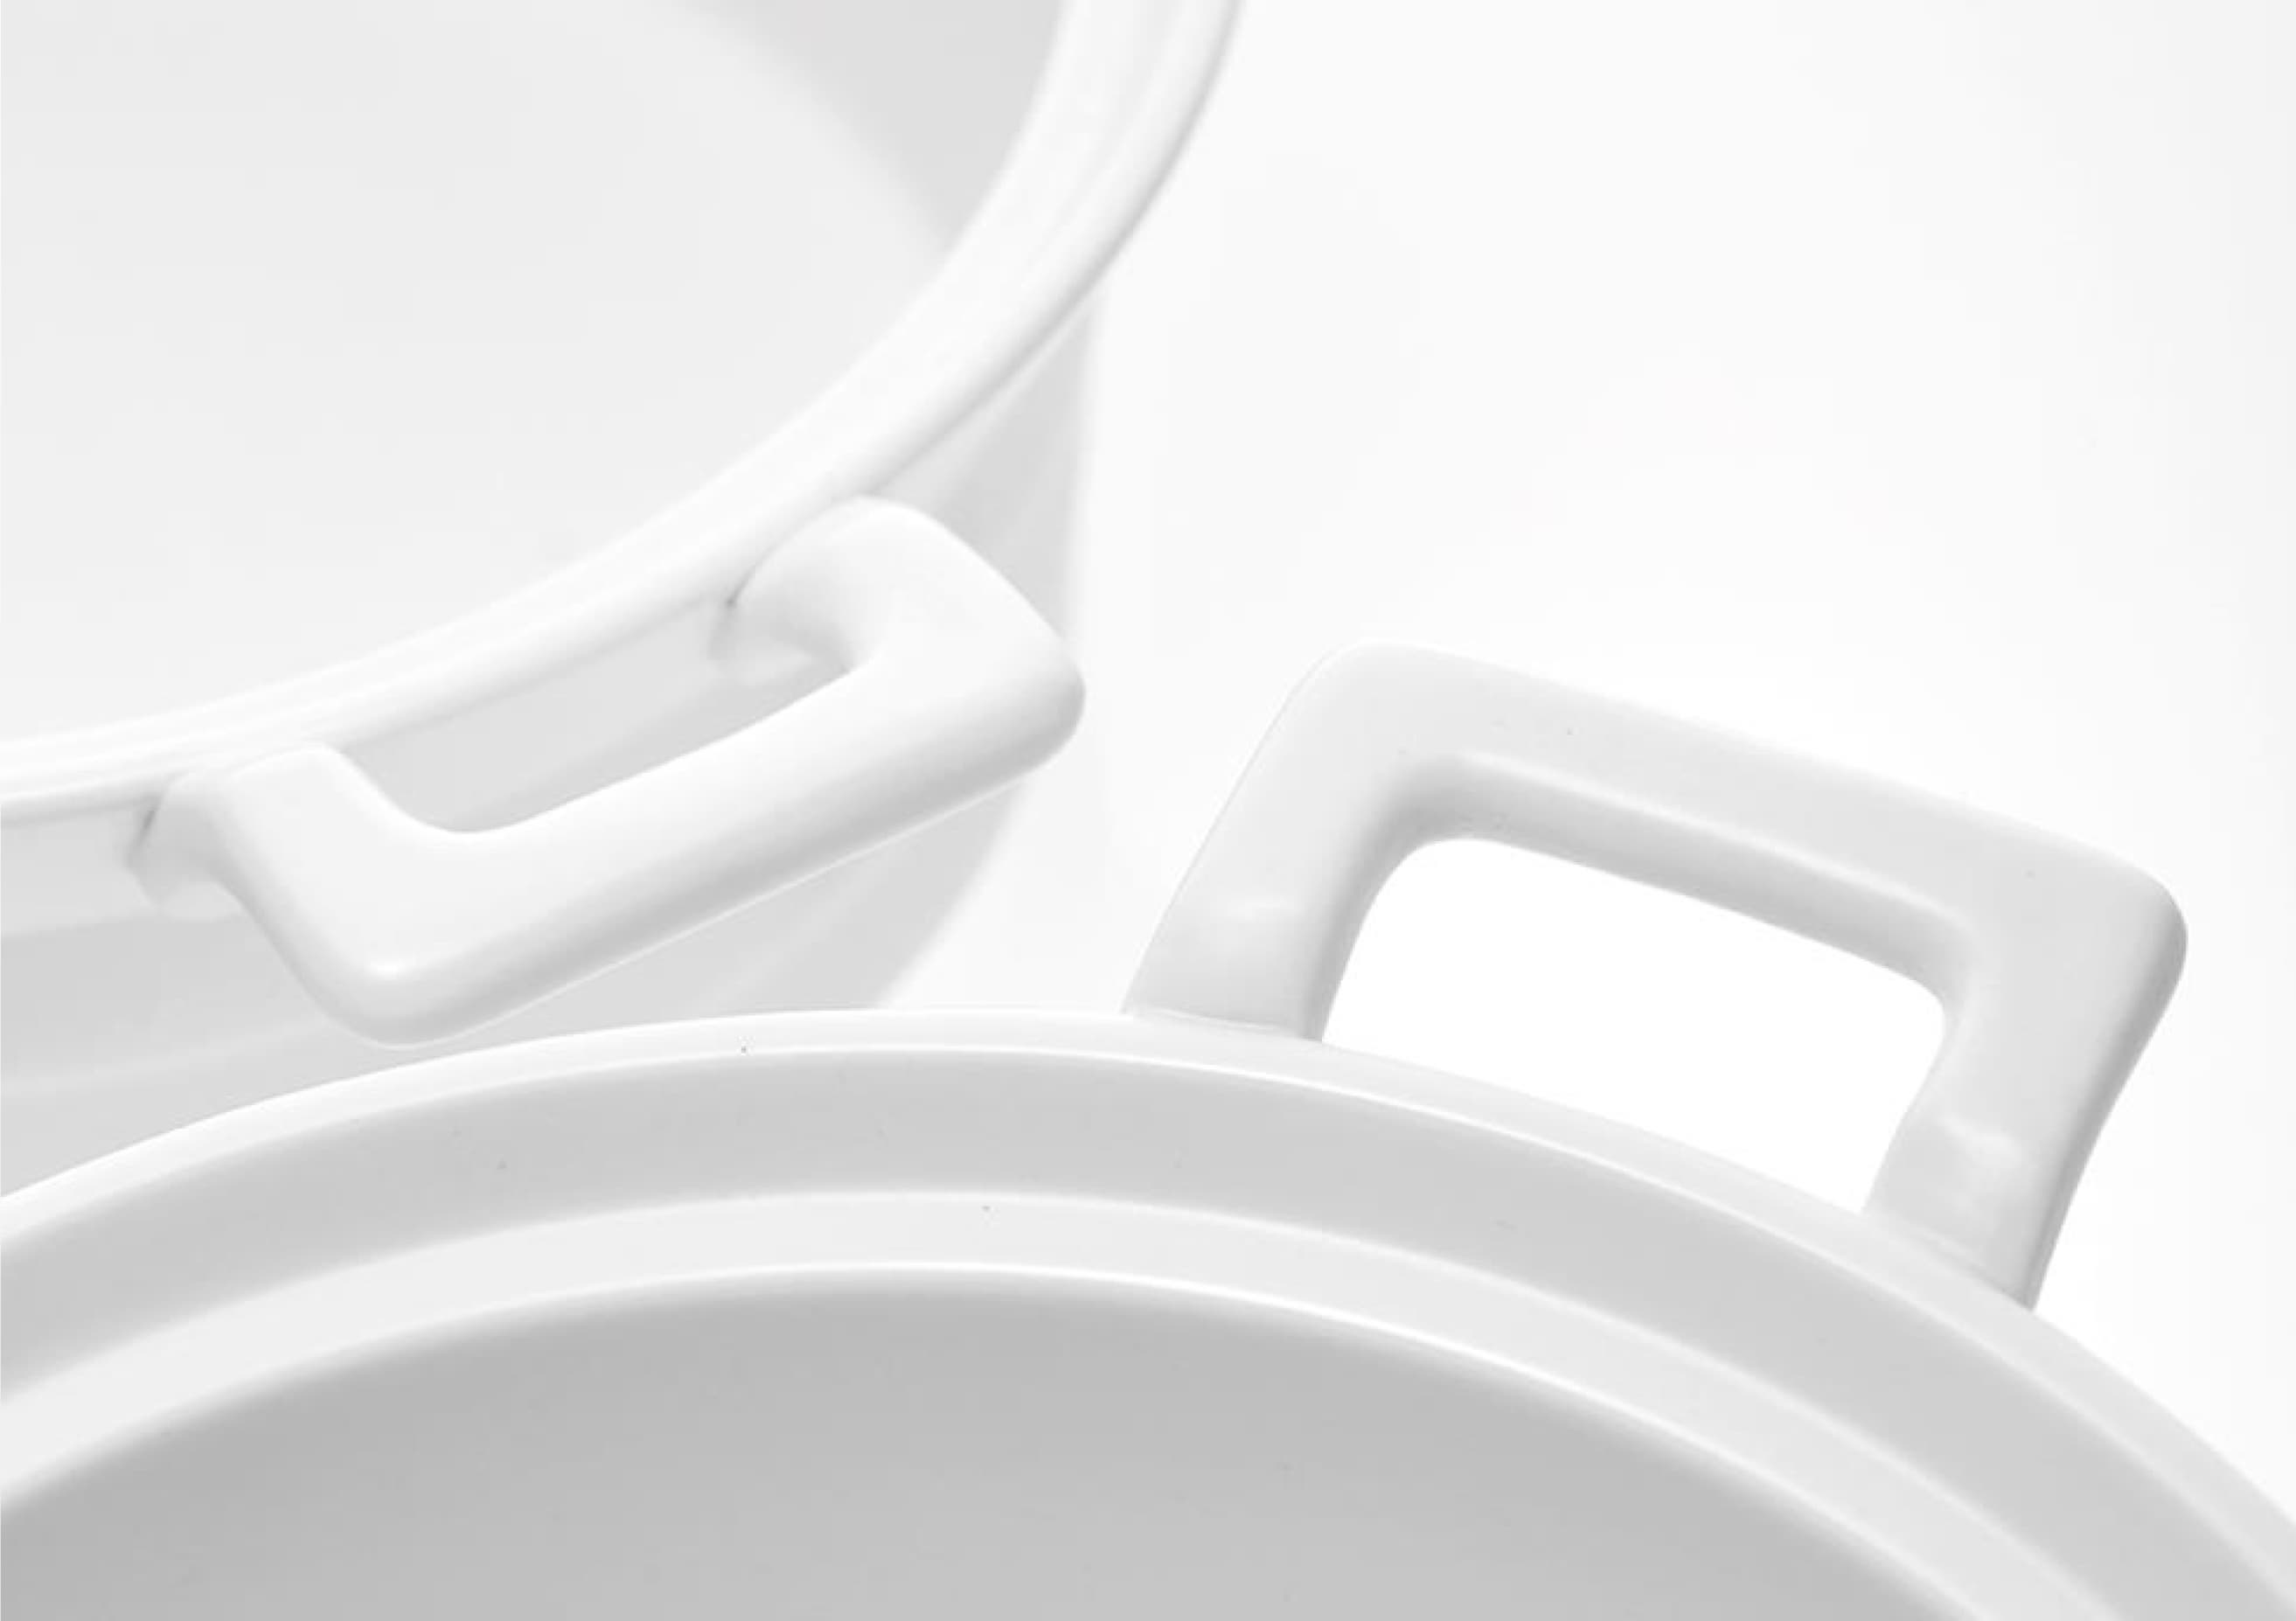 White Ceramic Heat proof Pot for Induction